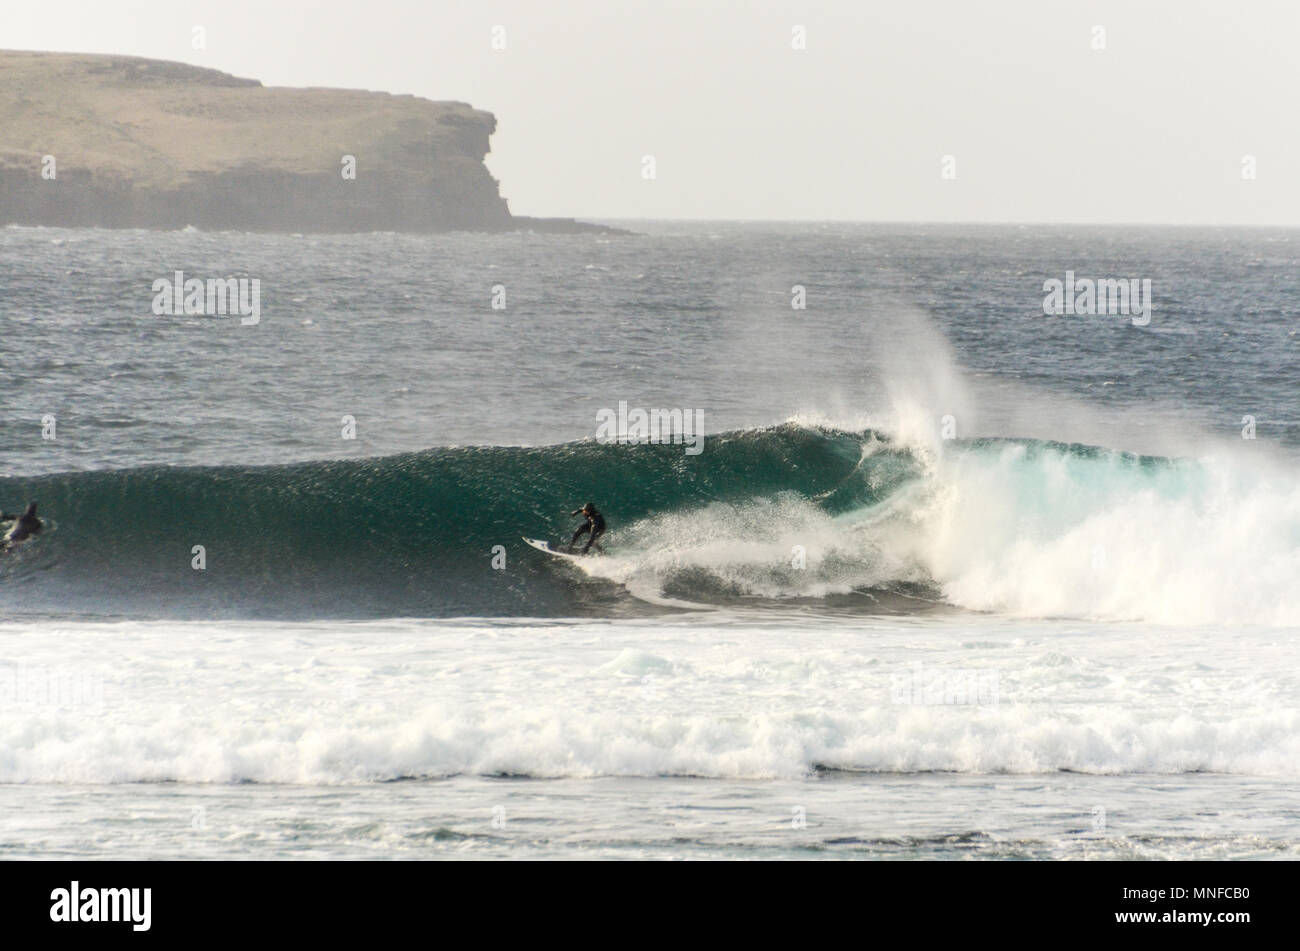 Surfer in a barel in Thurso, Highland, Scotland Stock Photo